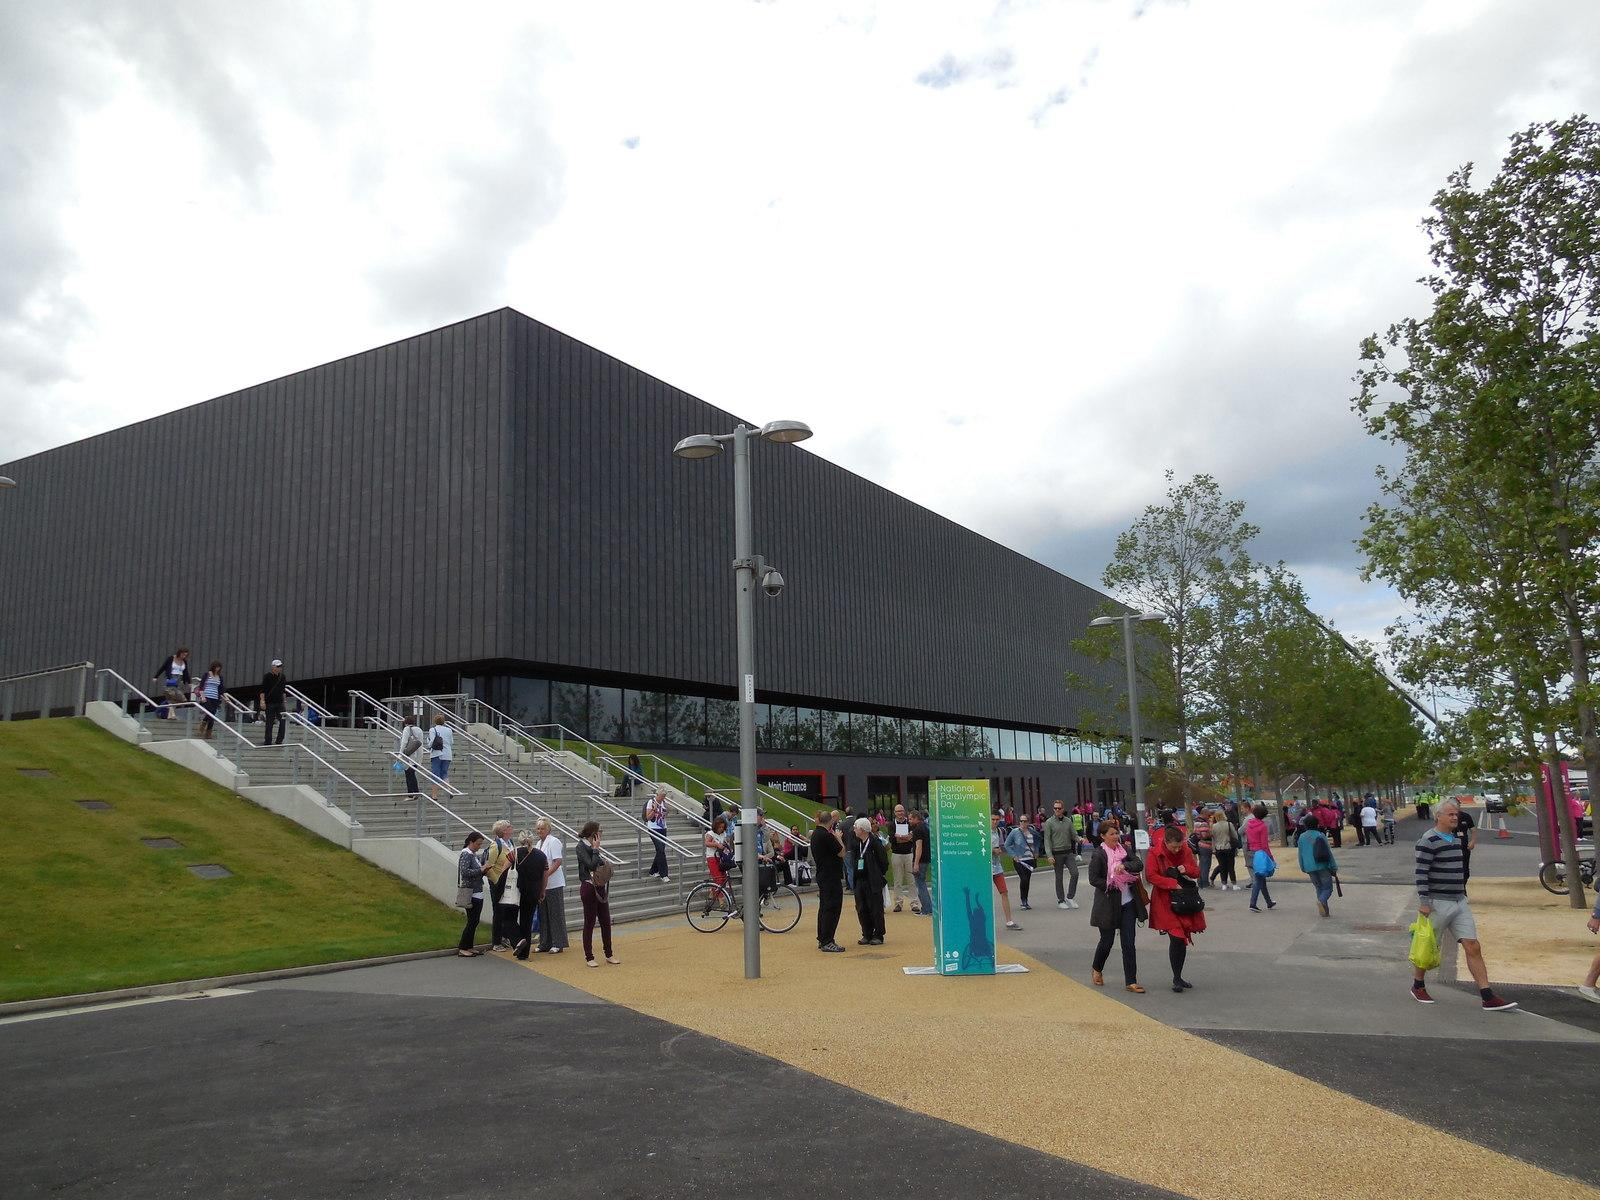 The Copper Box